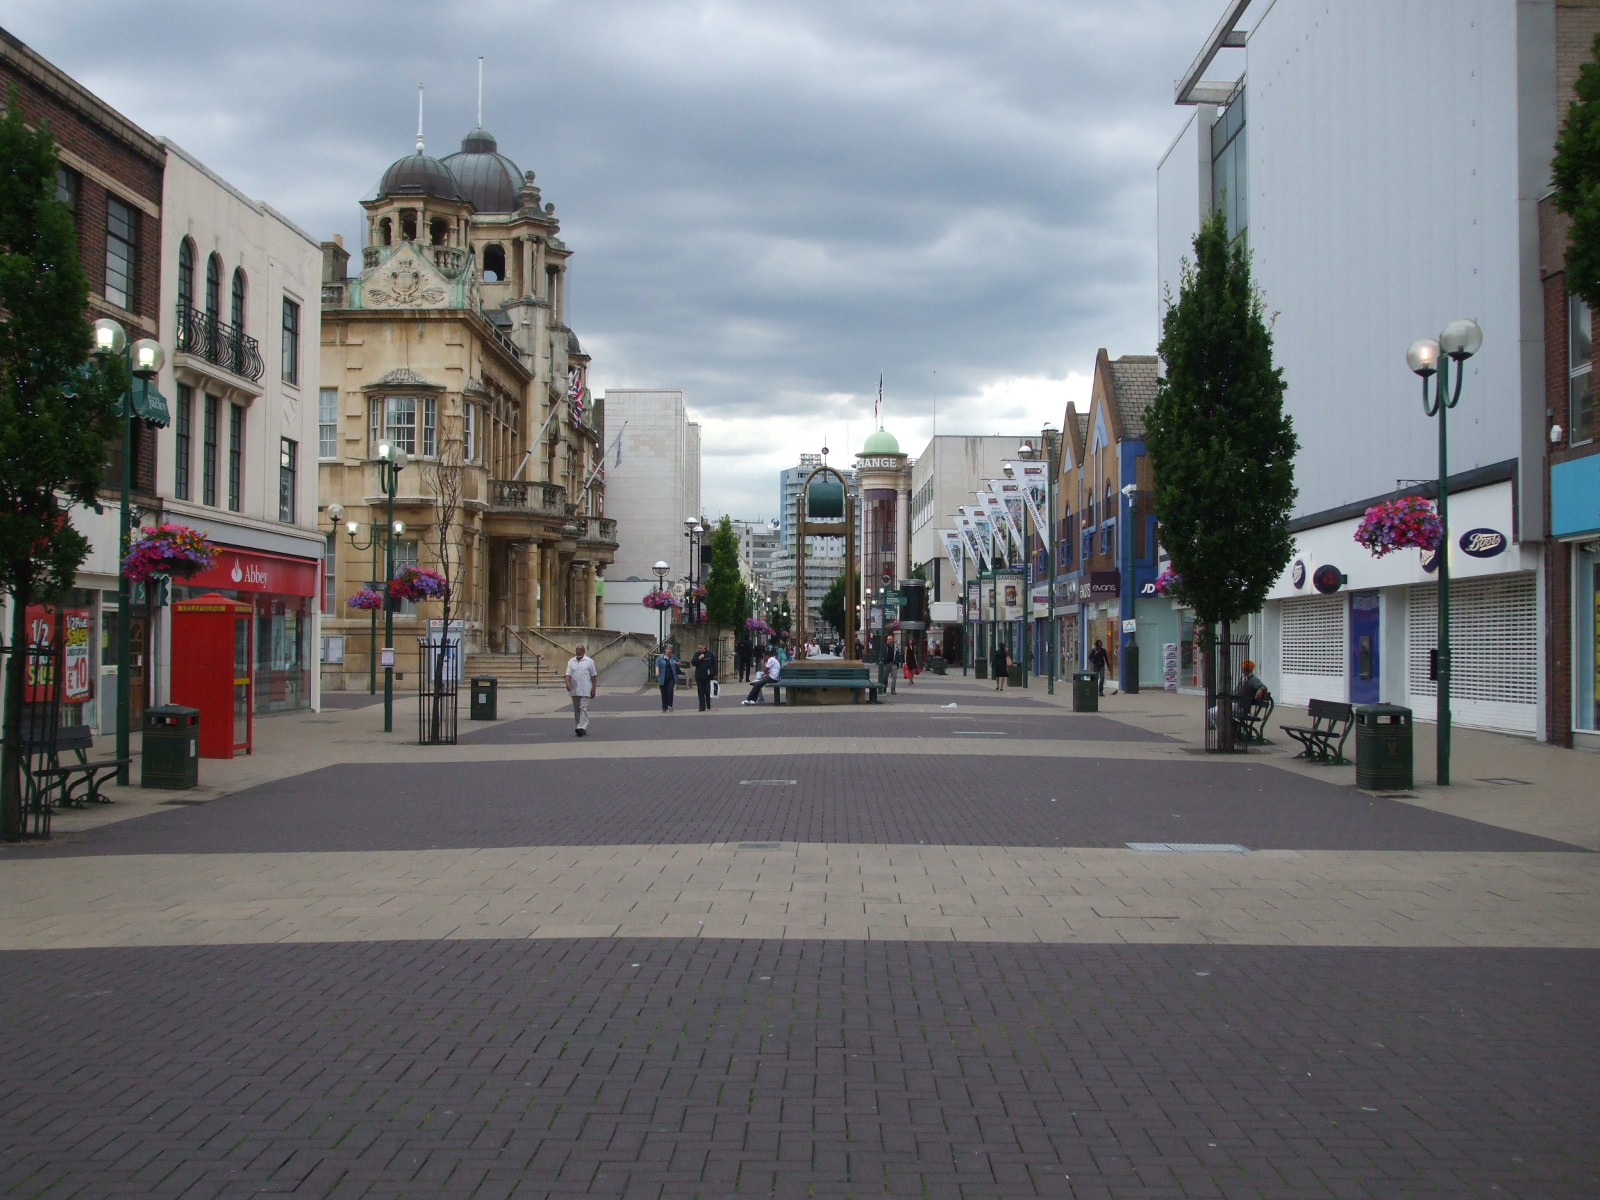 File:Ilford High Road westward.JPG - Wikimedia Commons